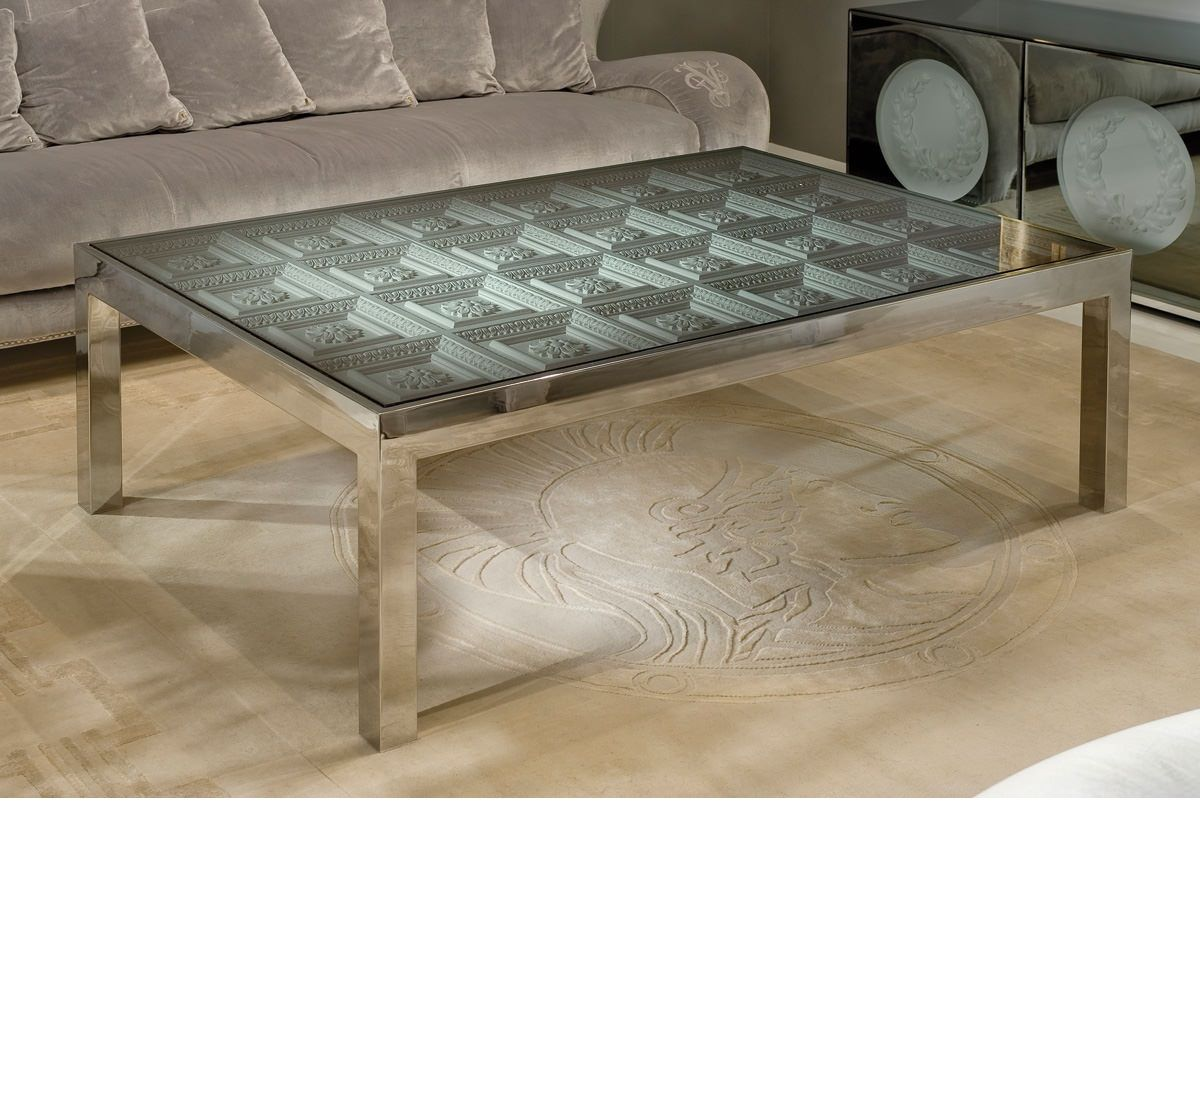 High End Coffee Tables Living Room Quotluxury Coffee Tables Quot Quotdesigner Coffee Tables Quot Quotcustom